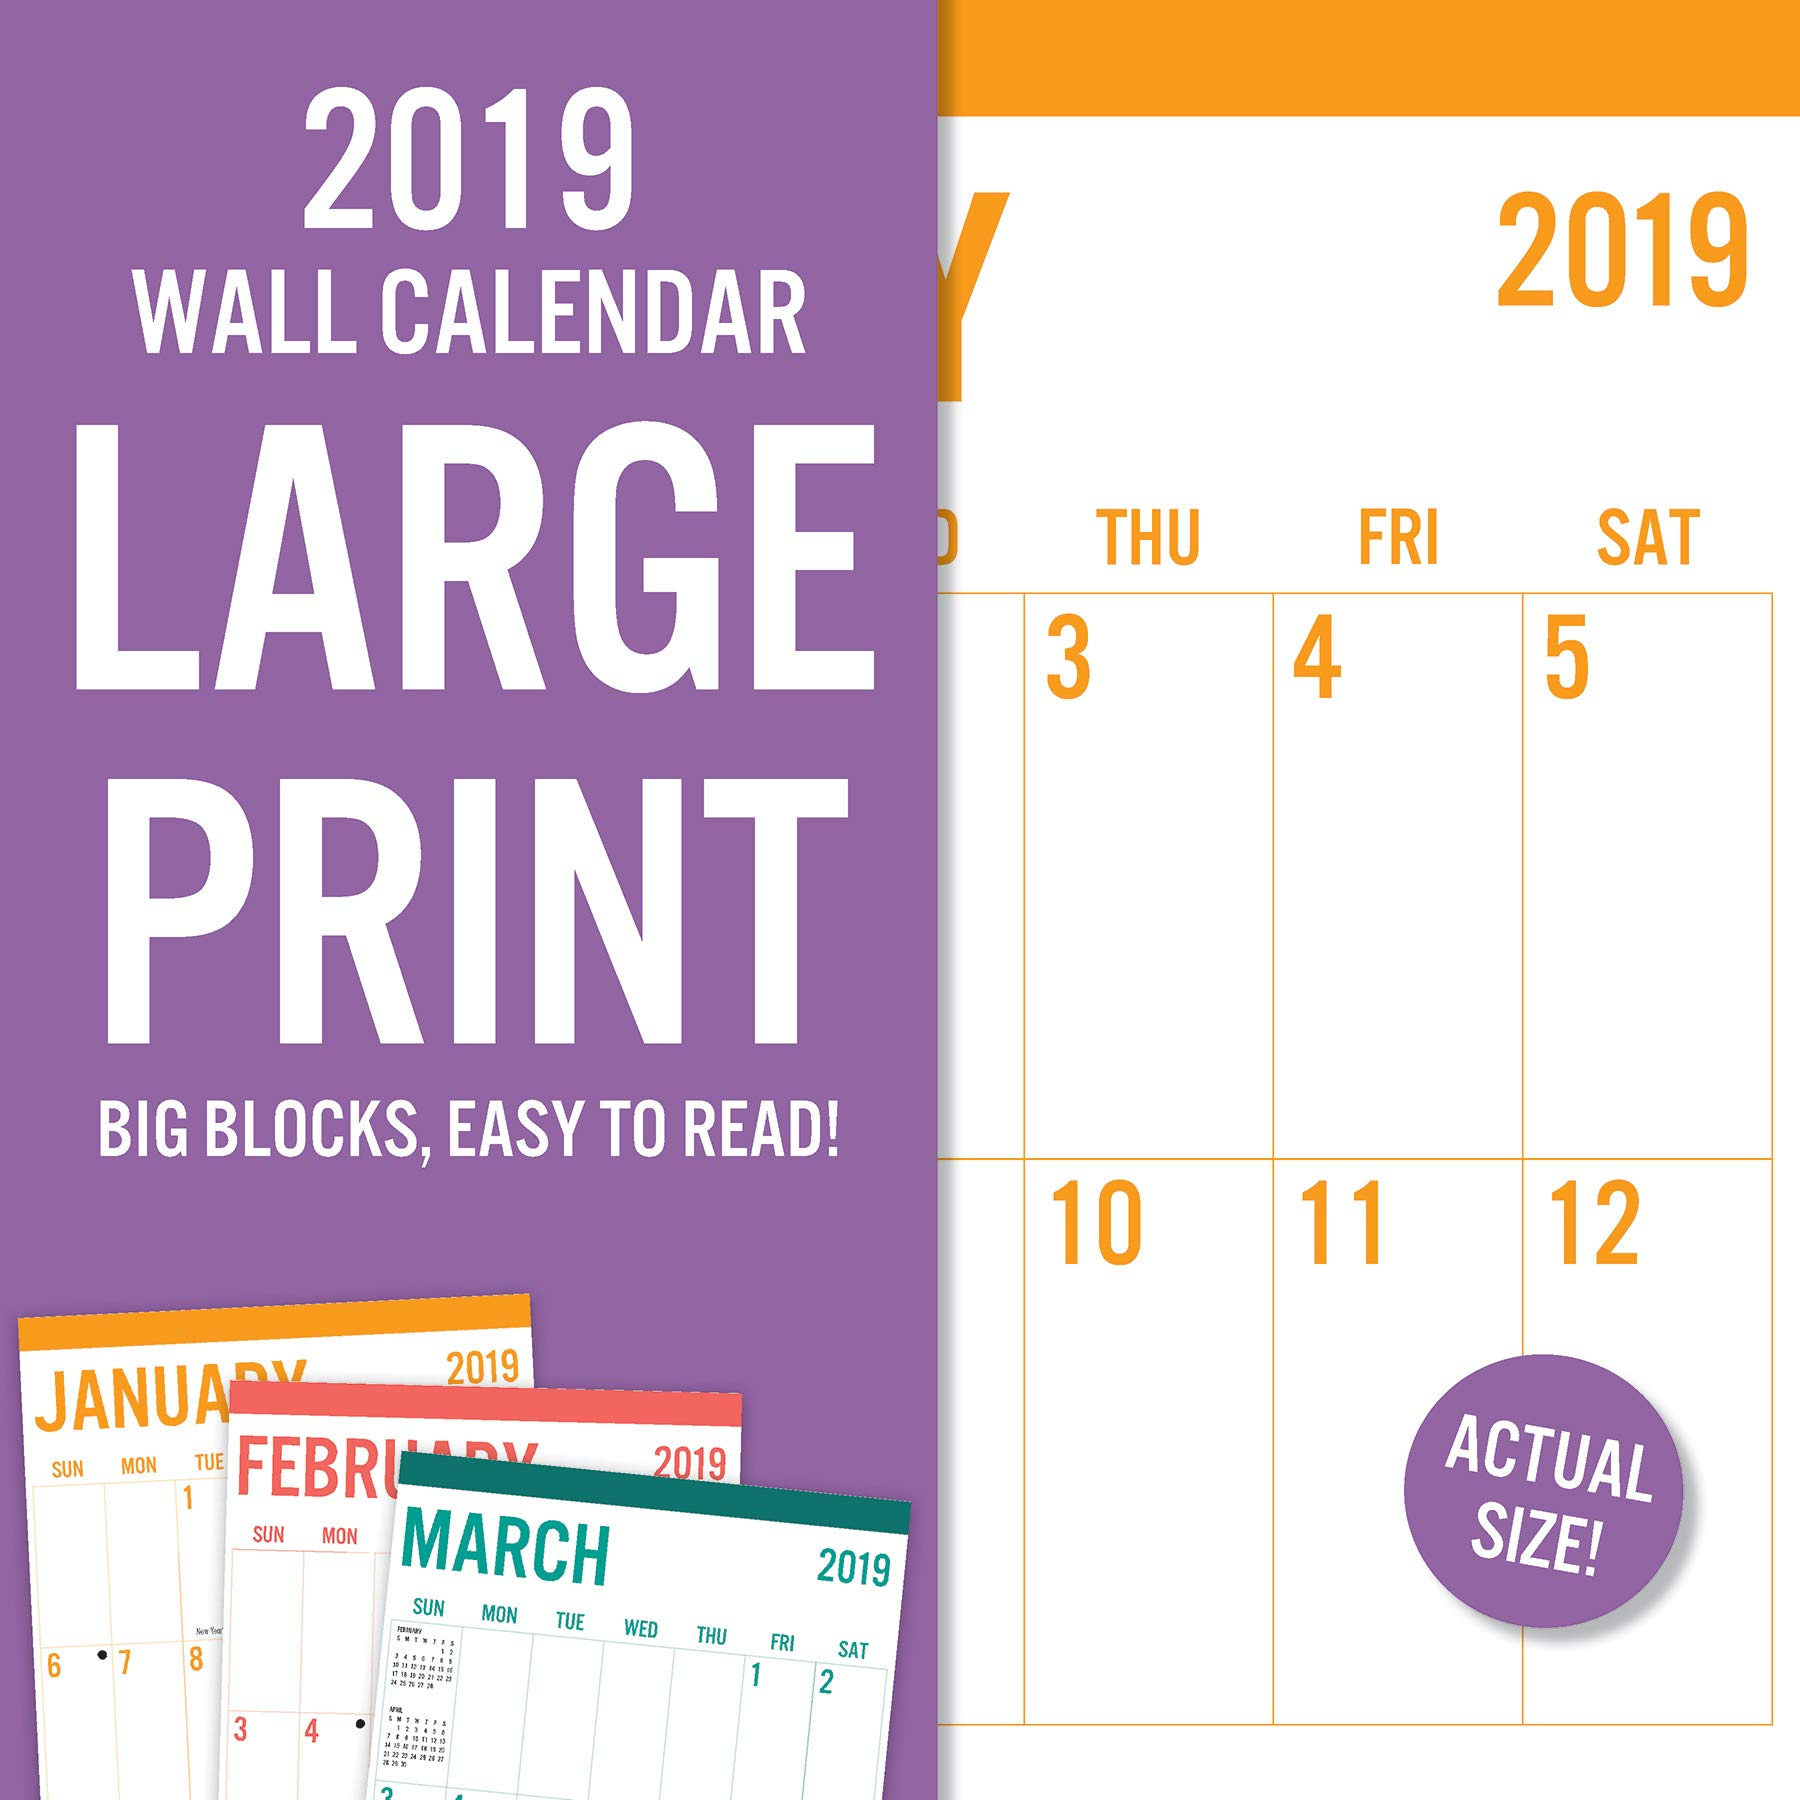 Avalon 2019 Wall Calendar, Large Print-Basic, 12 x 12 inches (82389)